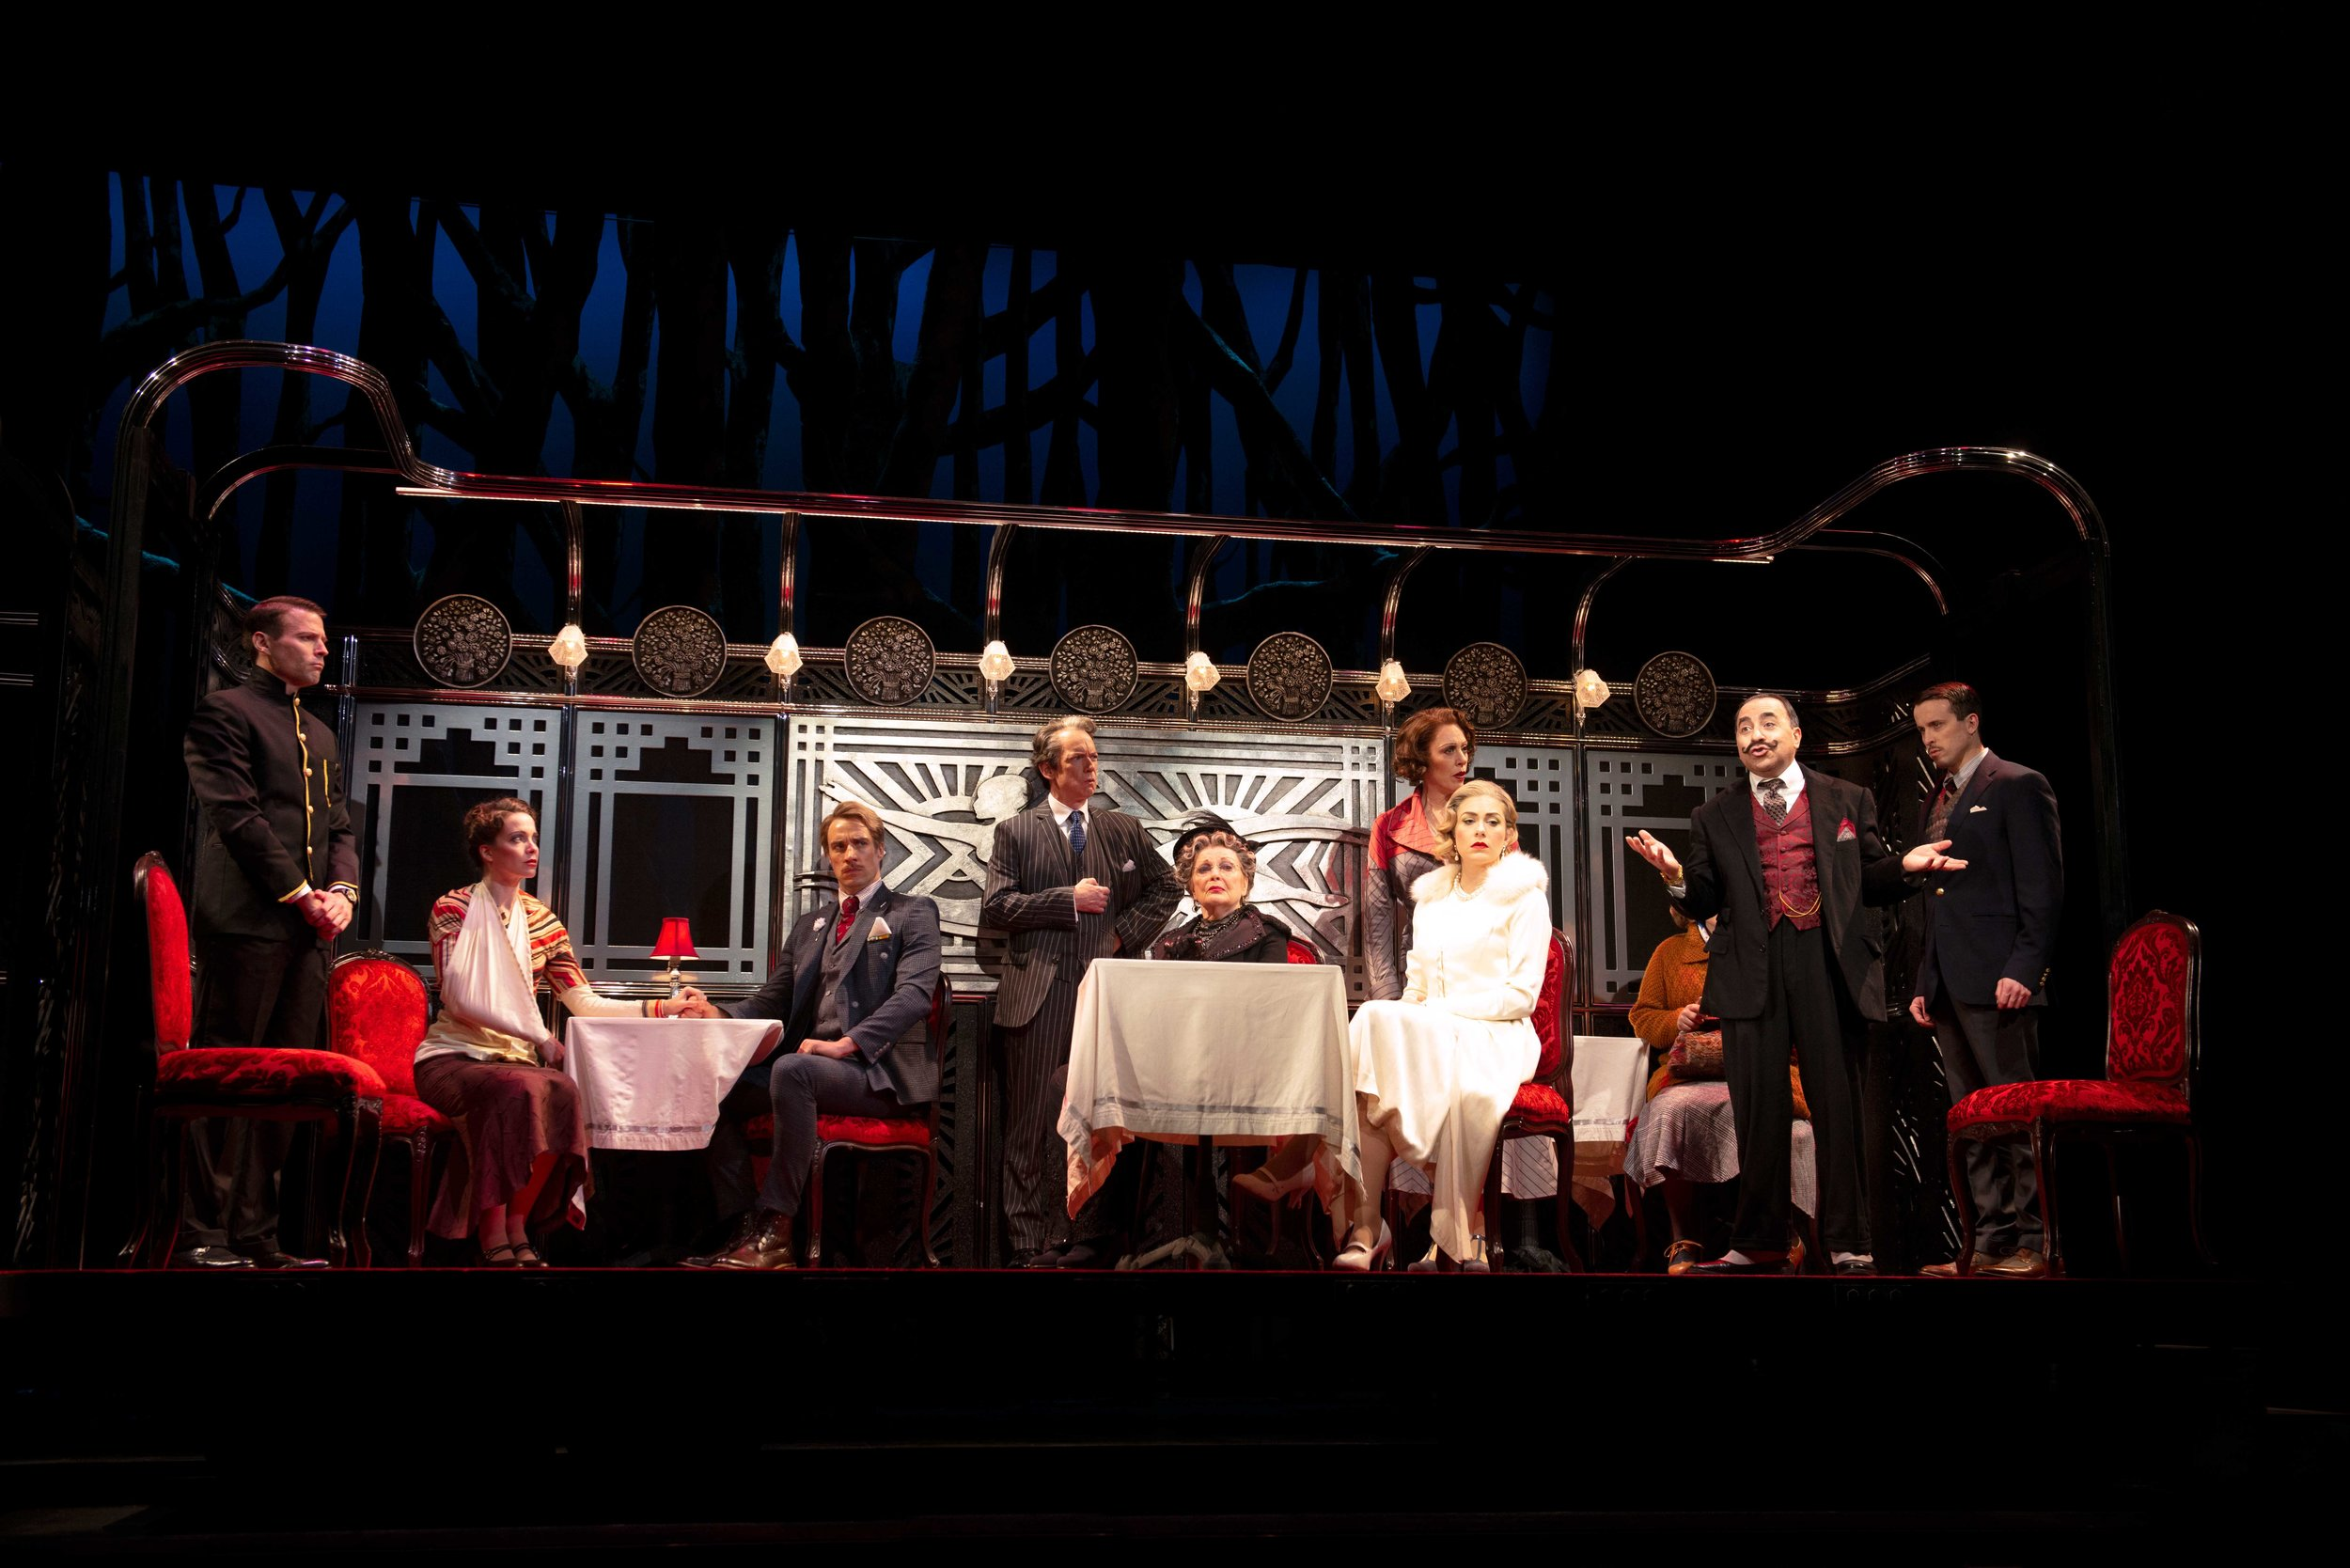 The cast of Agatha Christie's Murder on the Orient Express at the Ogunquit Playhouse. Photo by Gary Ng